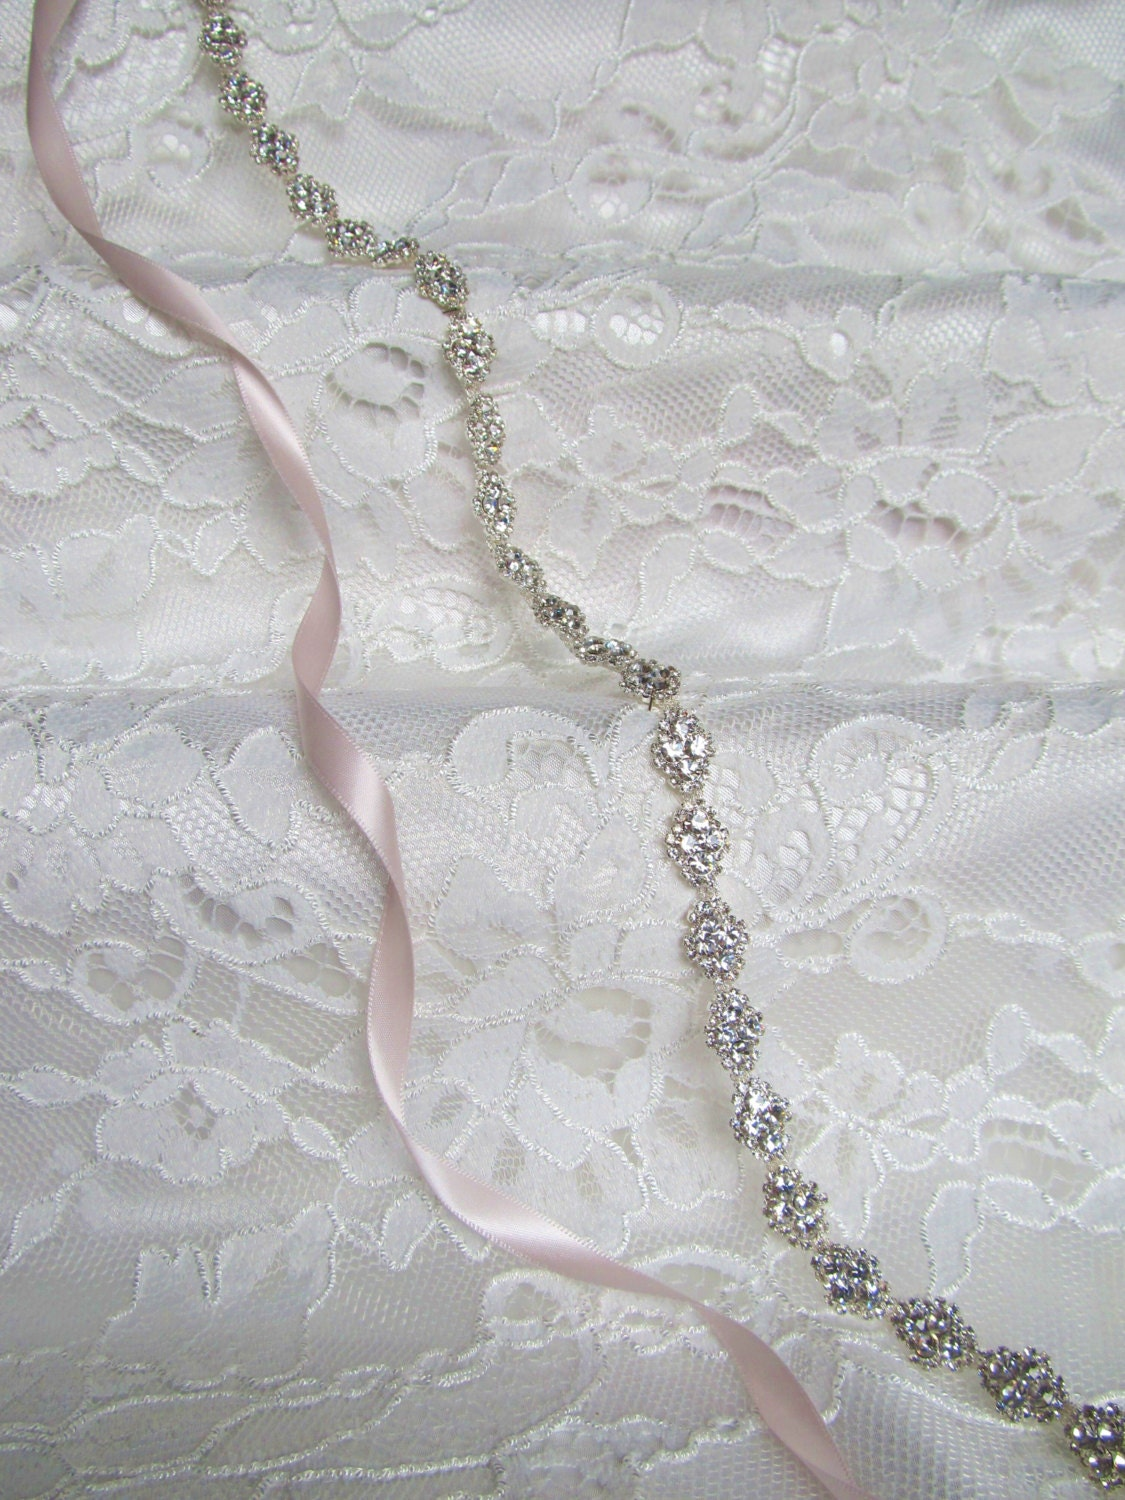 Delicate Silver Crystal Rhinestone Bridal Sash,Wedding sash,Bridal Accessories,Bridal Belt,Style #49